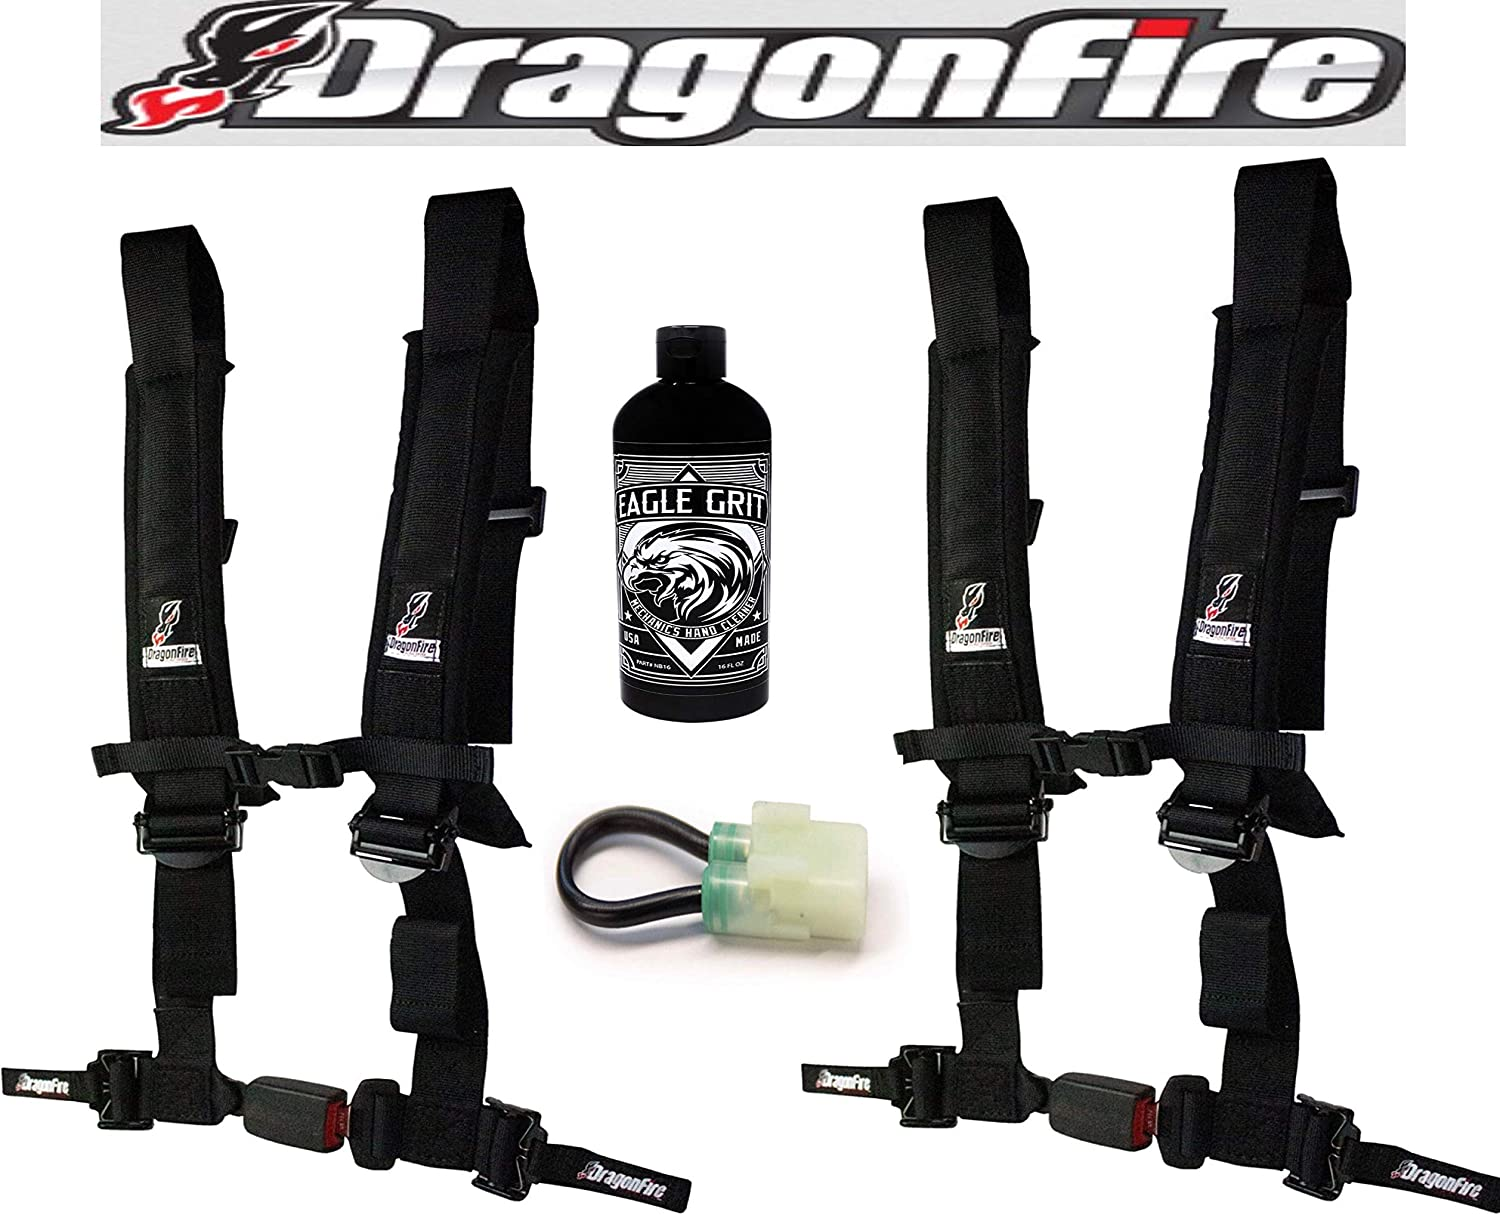 4-Point Harness UTV 2 H-Style AUTO LATCH Set of 2 with EZ Adjust shoulder straps by Dragonfire Racing and Honda and Override Clip for Honda Talon With Free Eagle Grit Hand Cleaner